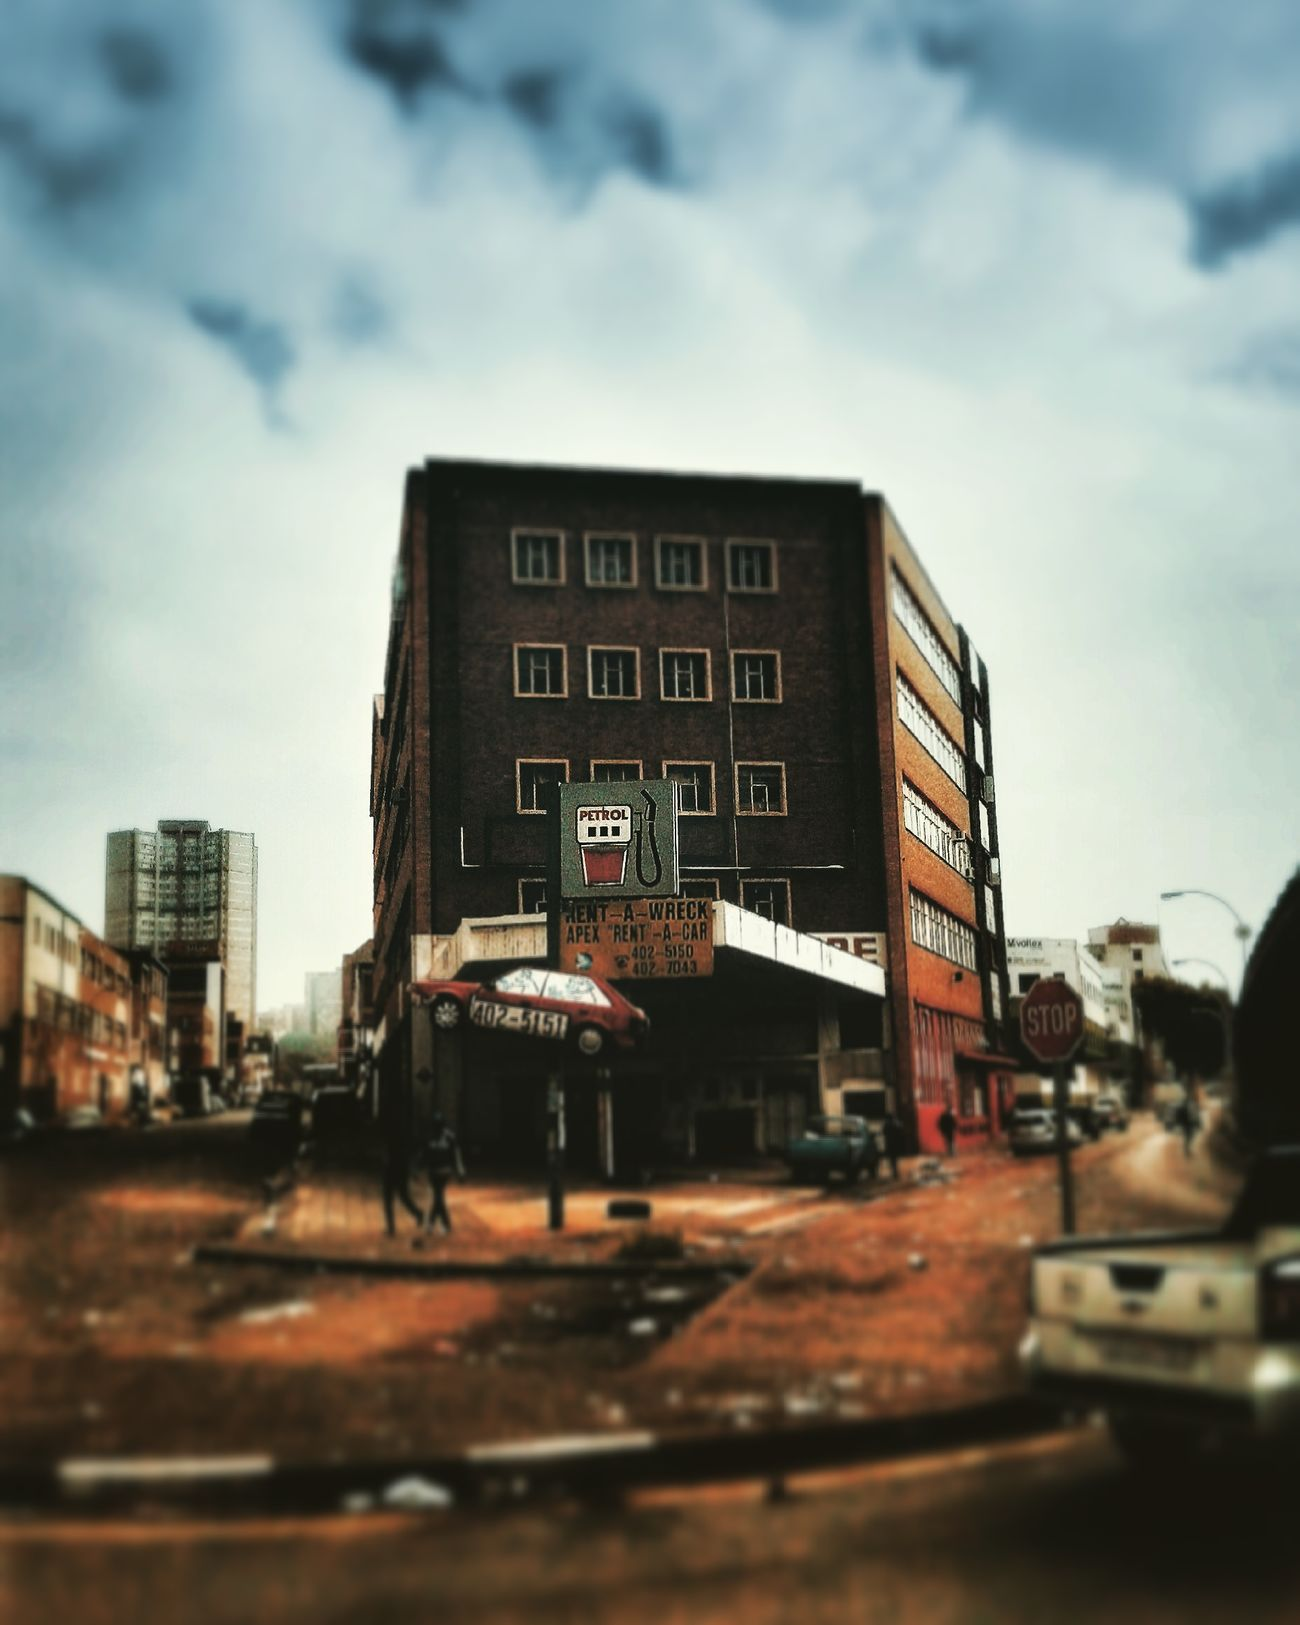 1pm in Johannesburg 18/03/16 - Wealth Discrepancy Taking Photos Hello World PhonePhotography Southafrica Eye Em A Traveller 16Prep IdentityTrip OpenEdit Historical Sights Streetphotography